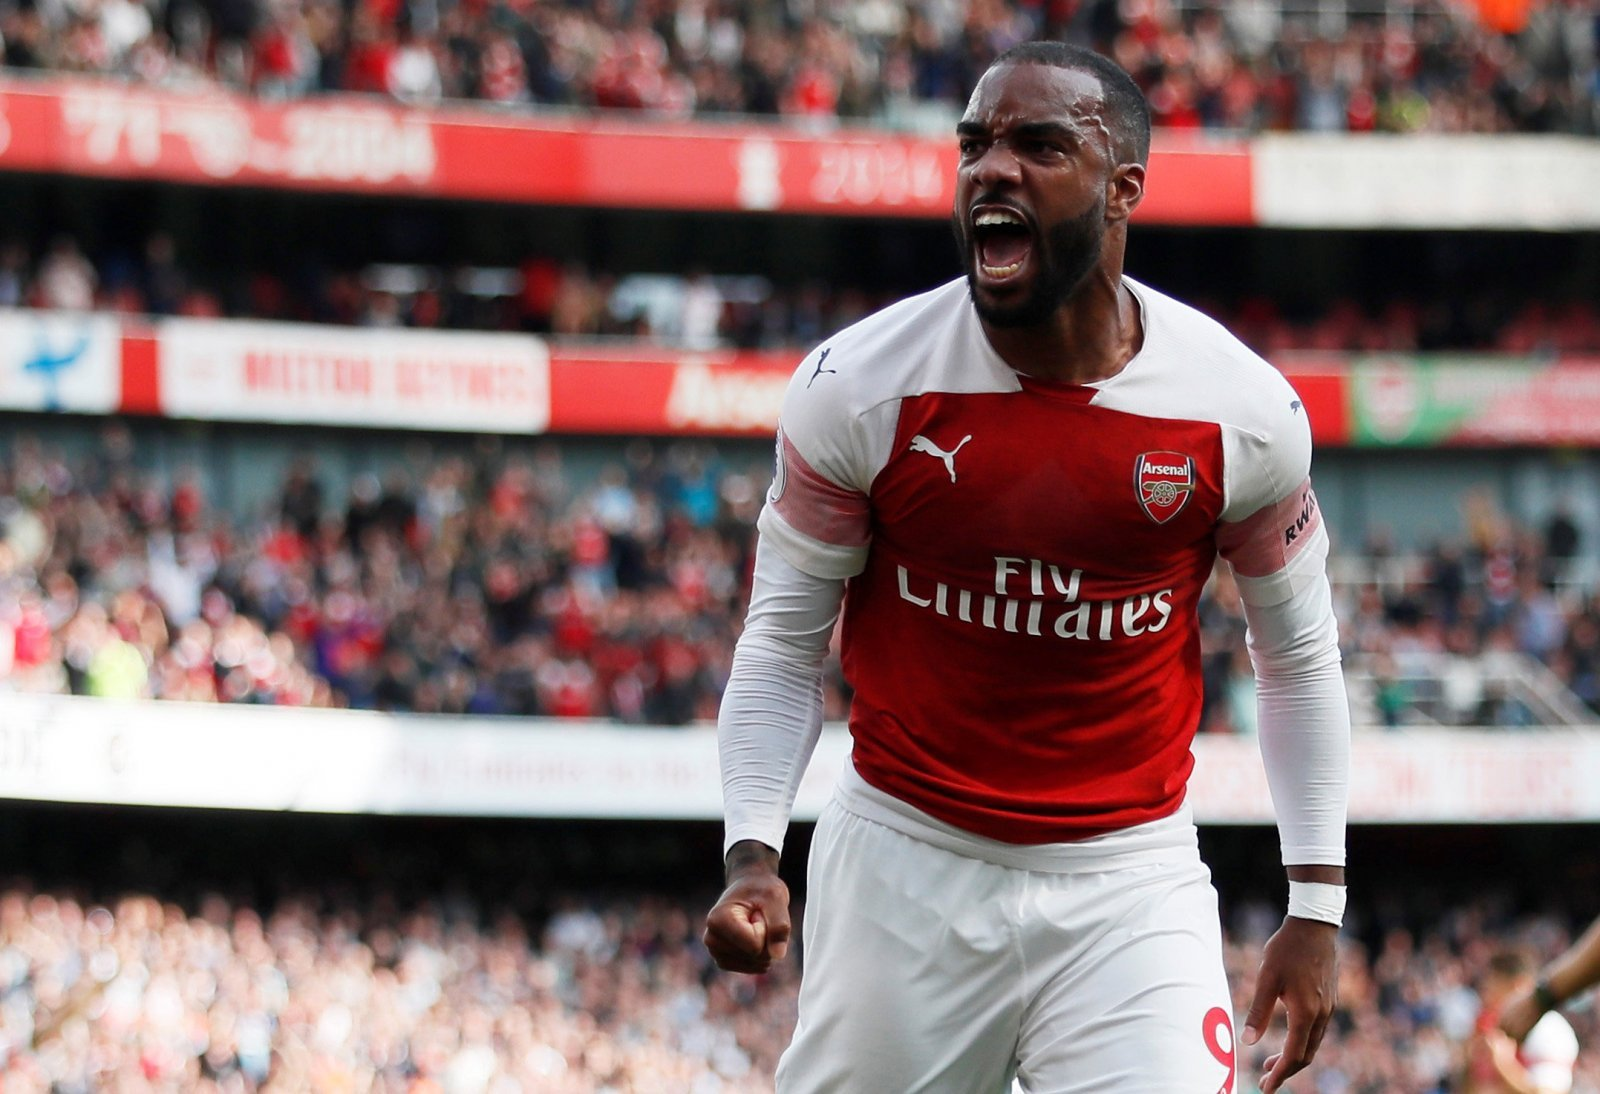 Arsenal fans on Twitter were in awe of Lacazette's brilliant Cardiff display